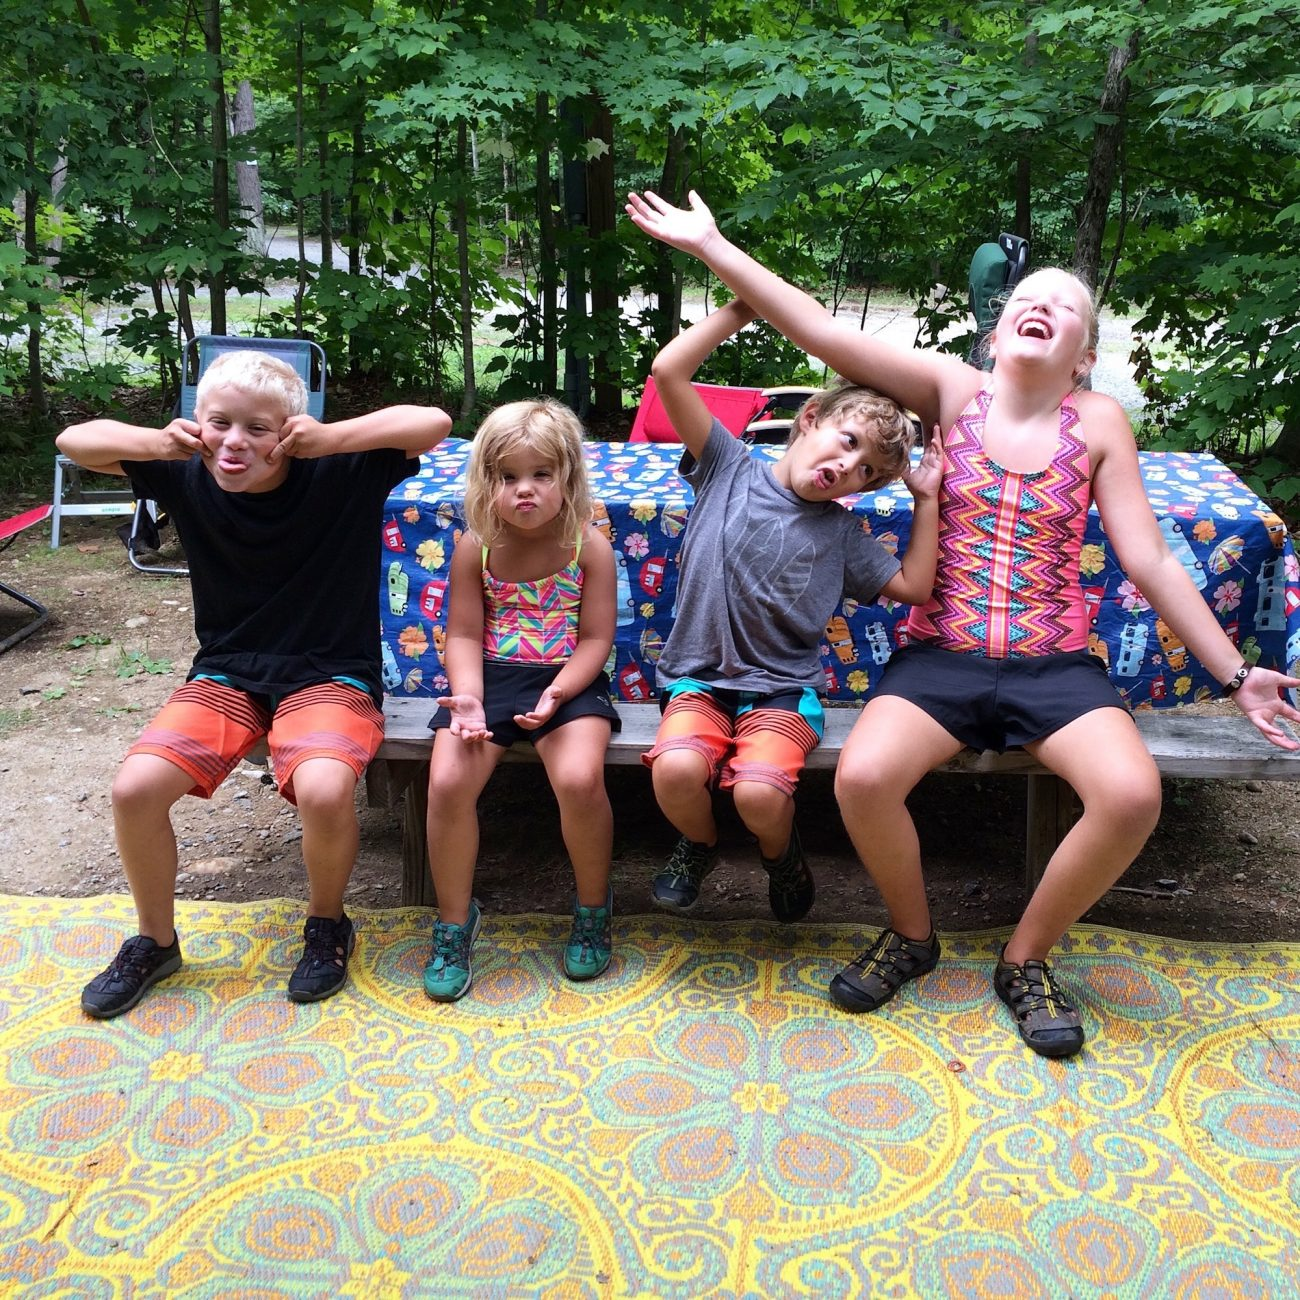 kids together in New York 2015